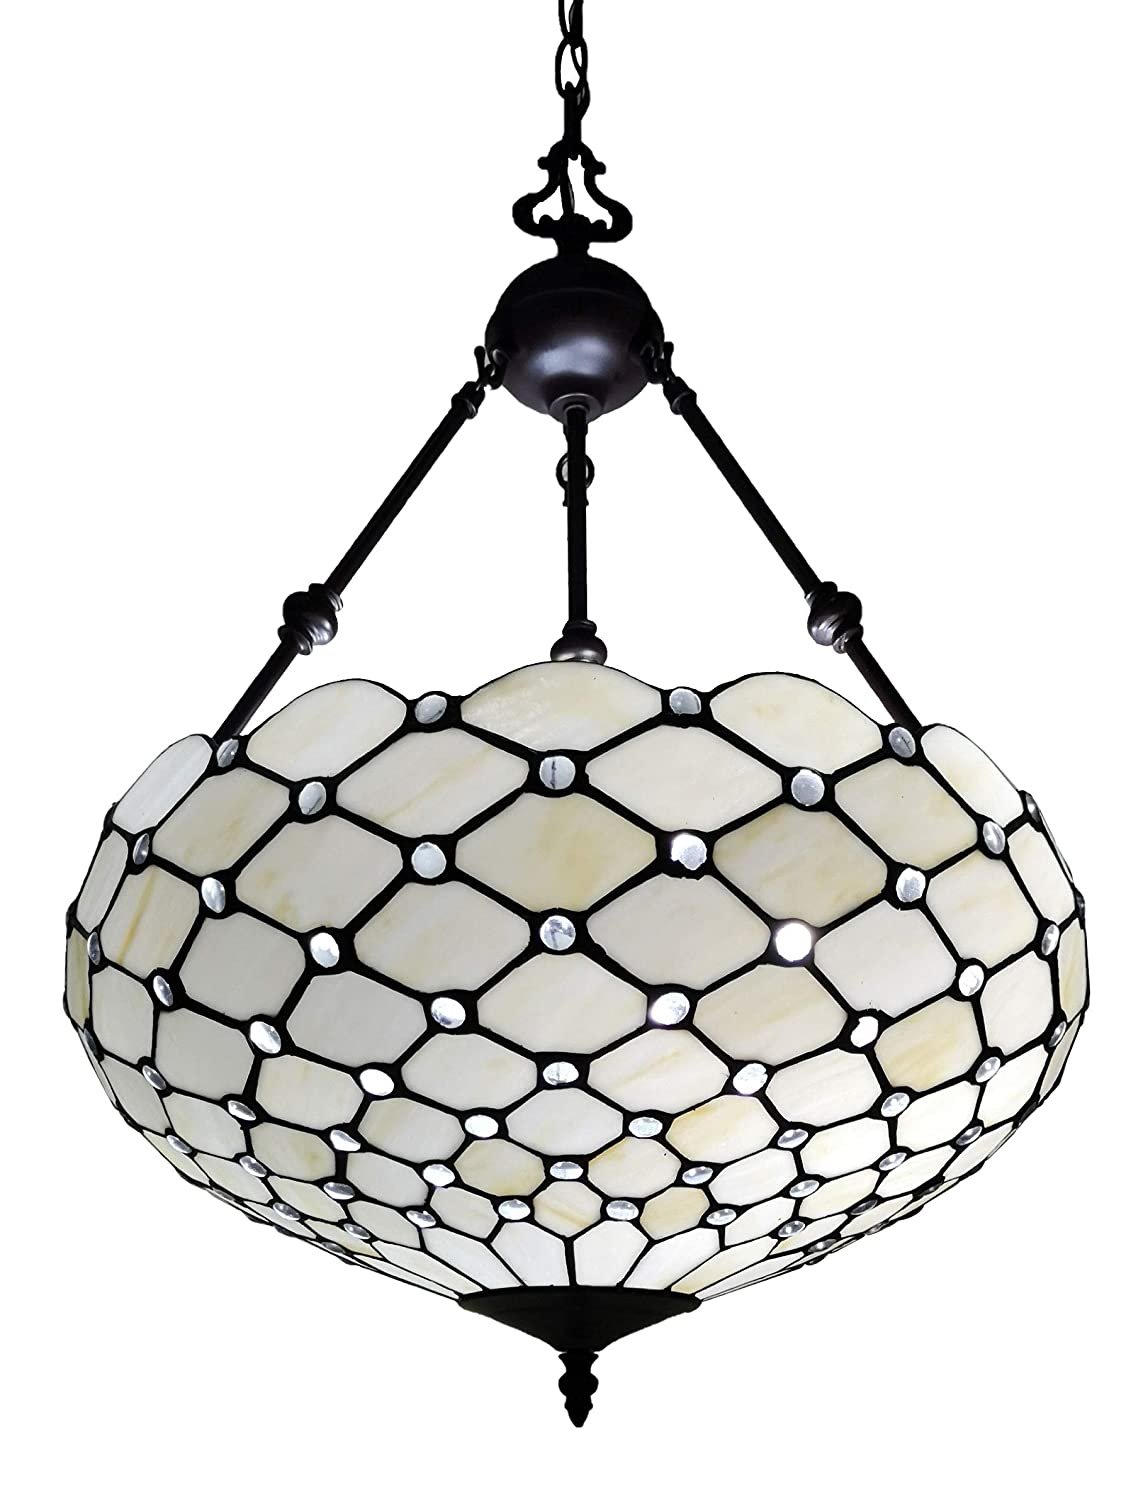 "Amora Lighting Tiffany Style Hanging Lamp Jeweled Chandelier 18"" Wide Stained Glass White Antique Vintage Light Decor Restaurant Game Living Dining Room Kitchen Gift AM1117HL18B"